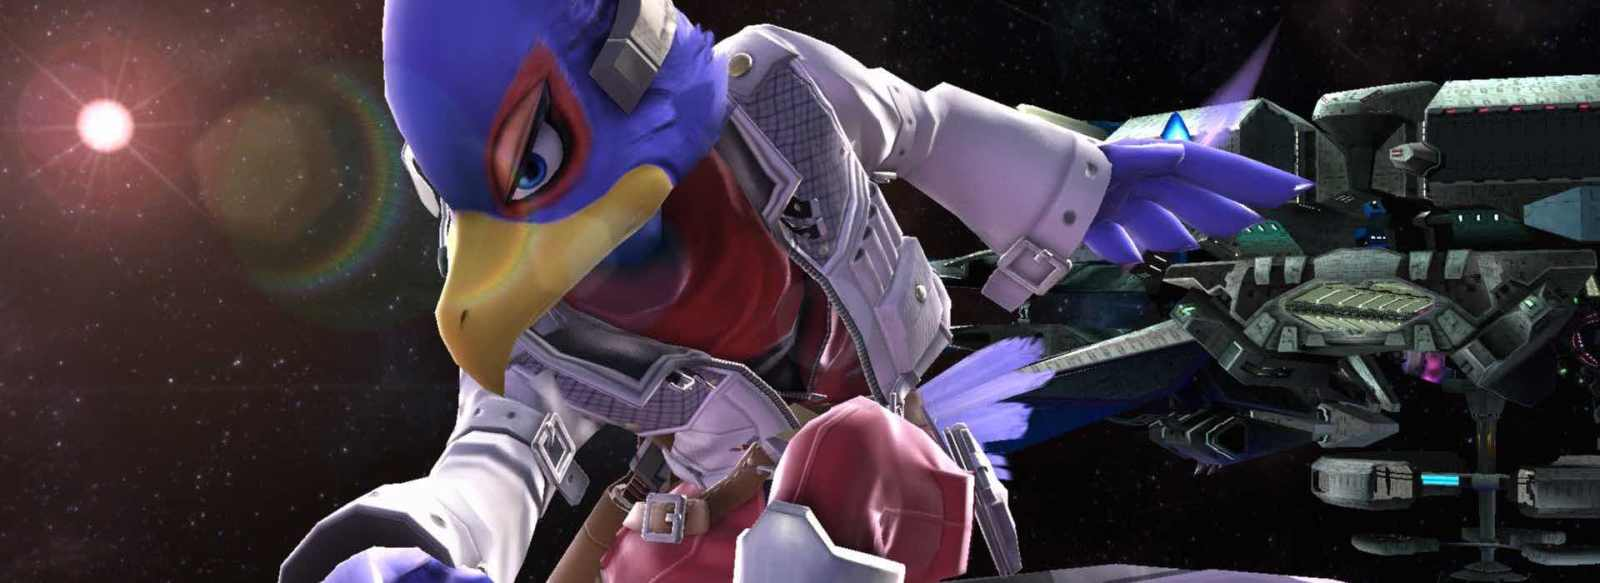 falco-super-smash-bros-for-wii-u